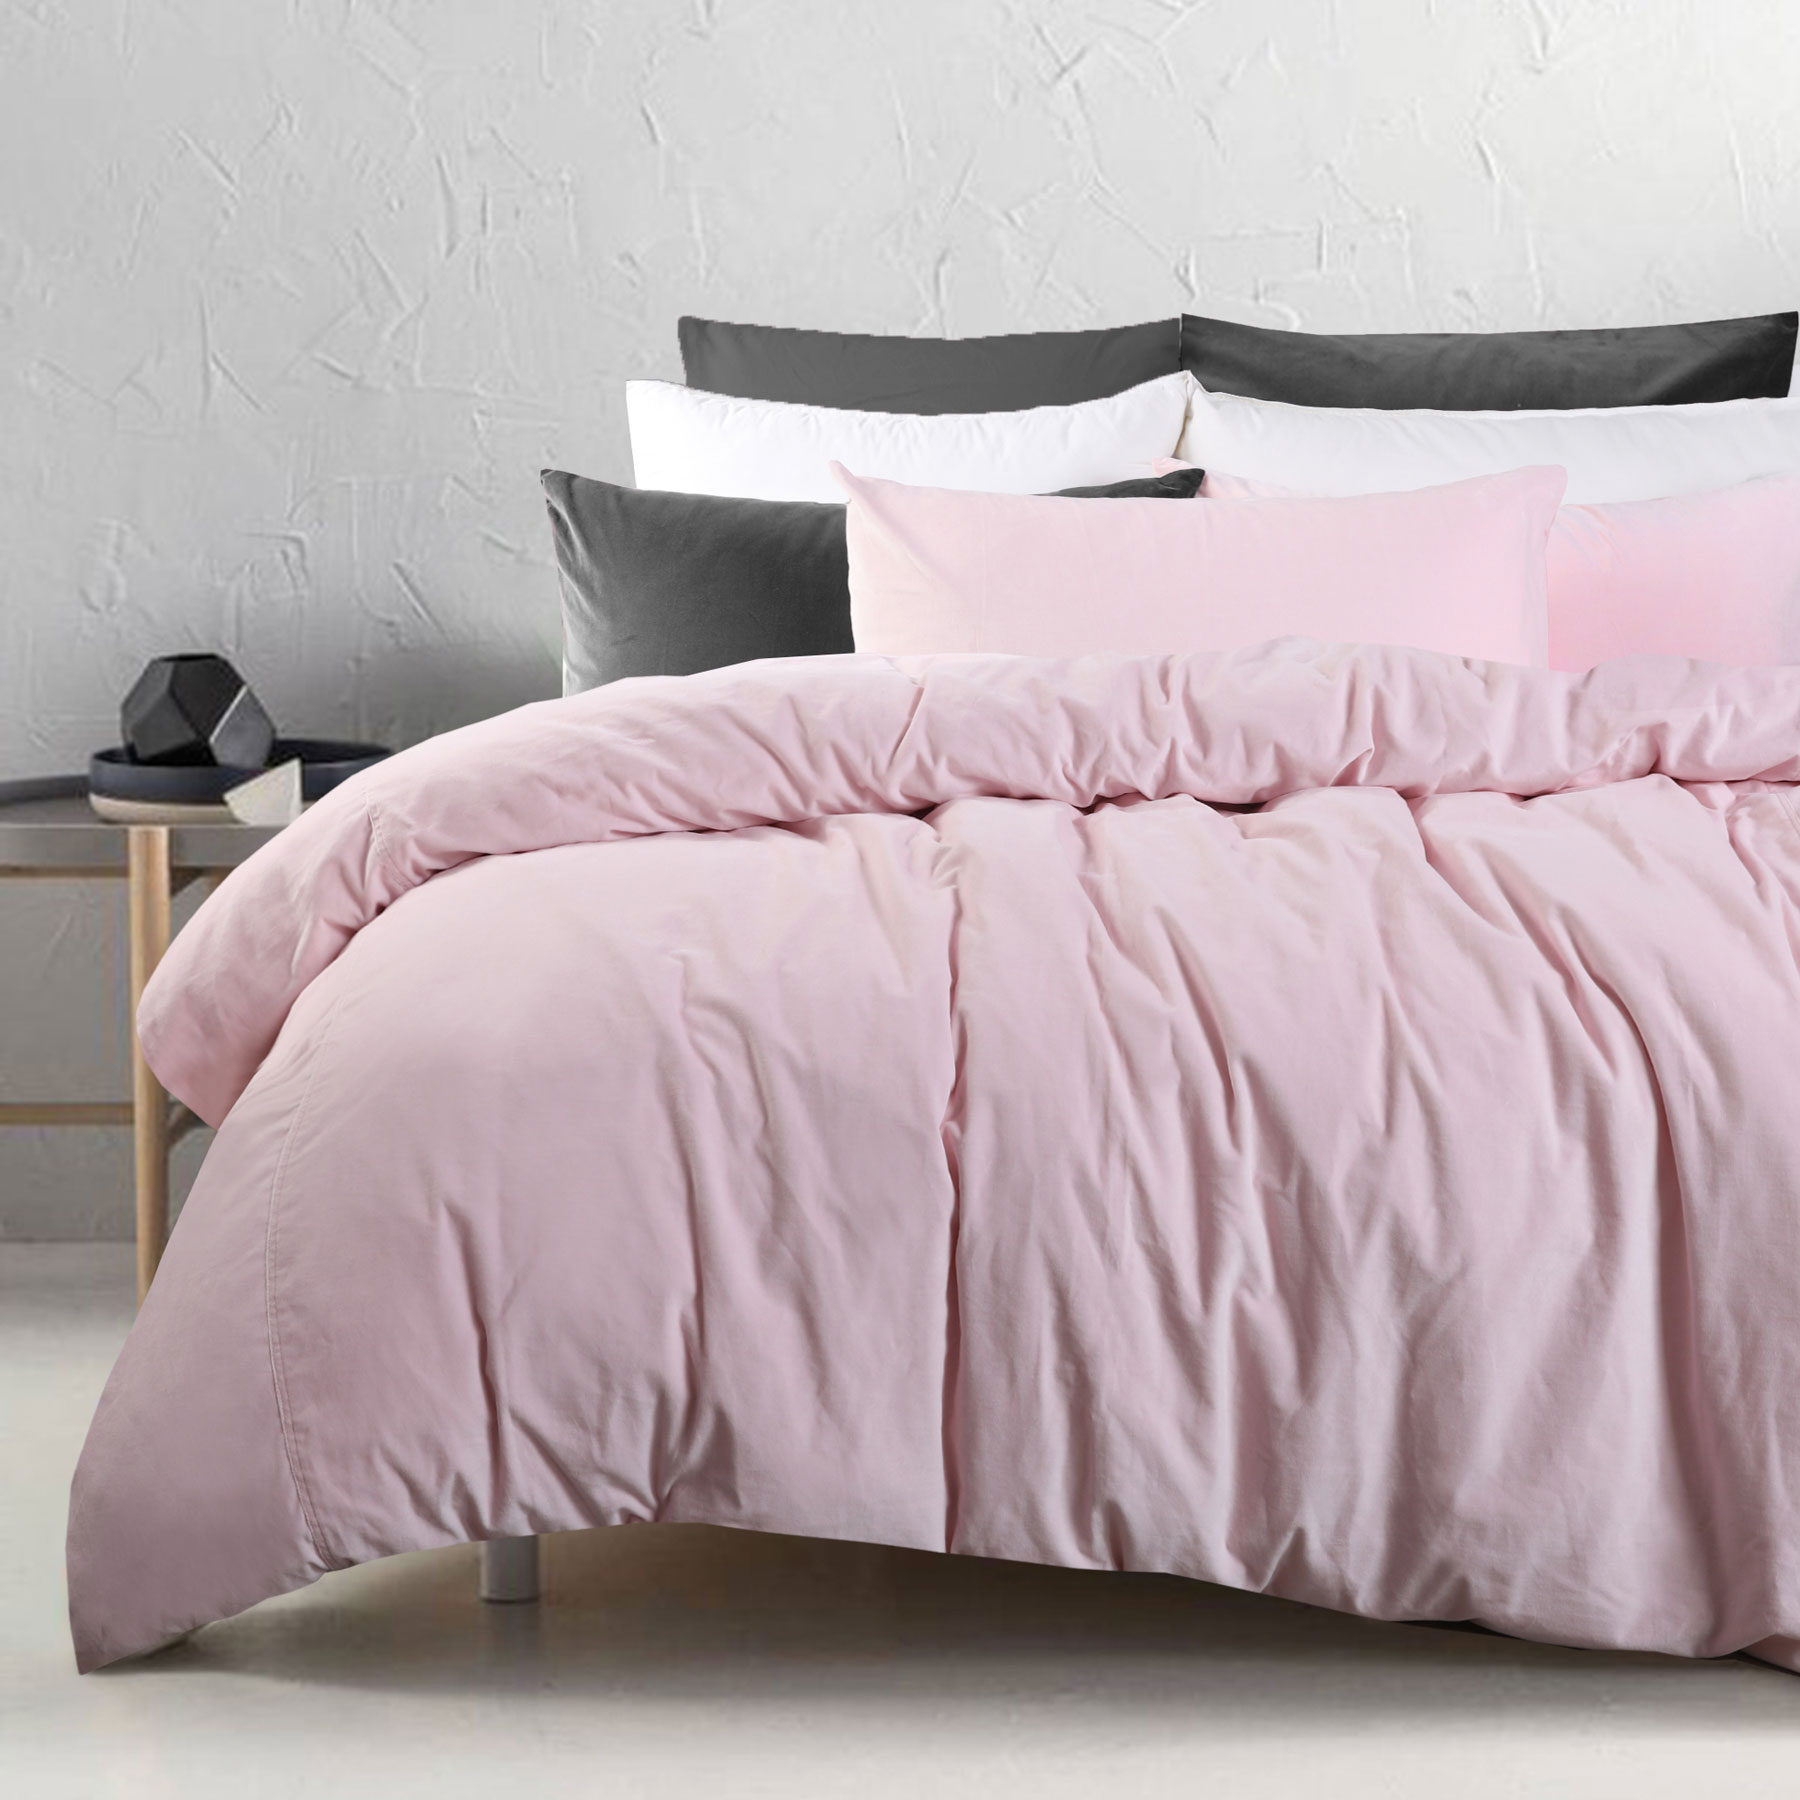 3 Pce Cotton Velvet Blush Quilt Doona Duvet Cover Set Queen King Super